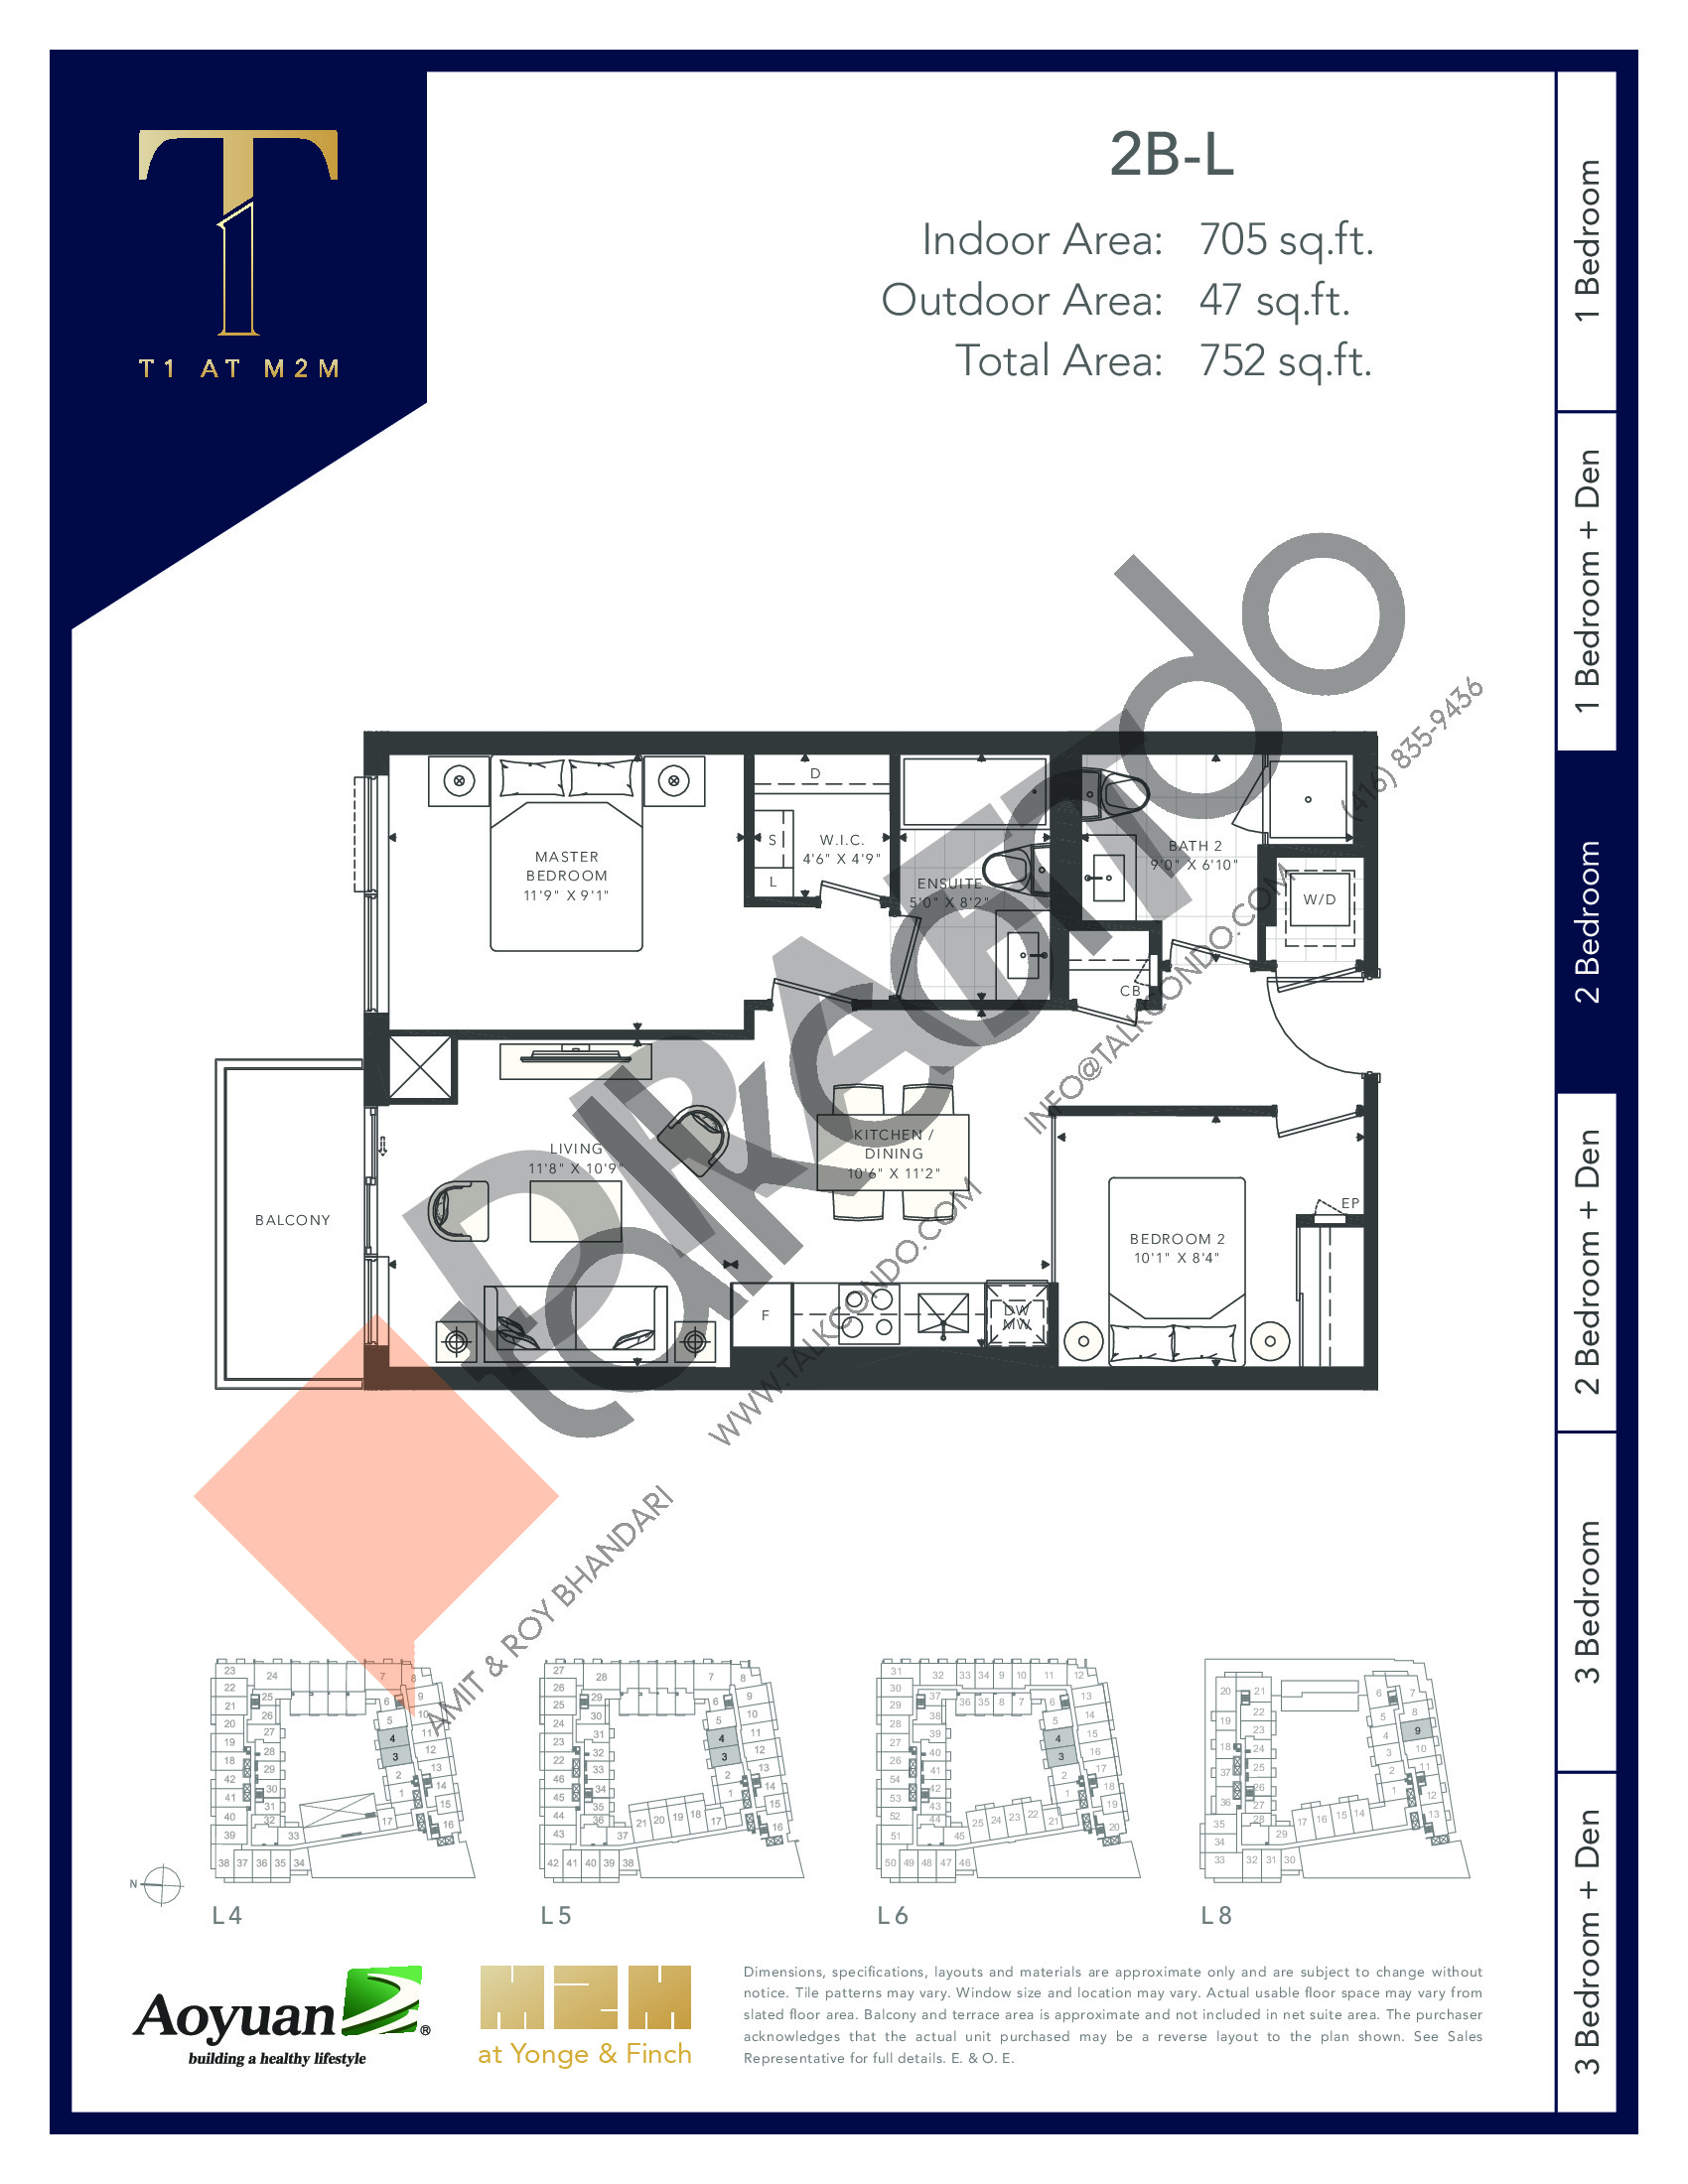 2B-L (Podium) Floor Plan at T1 at M2M Condos - 705 sq.ft